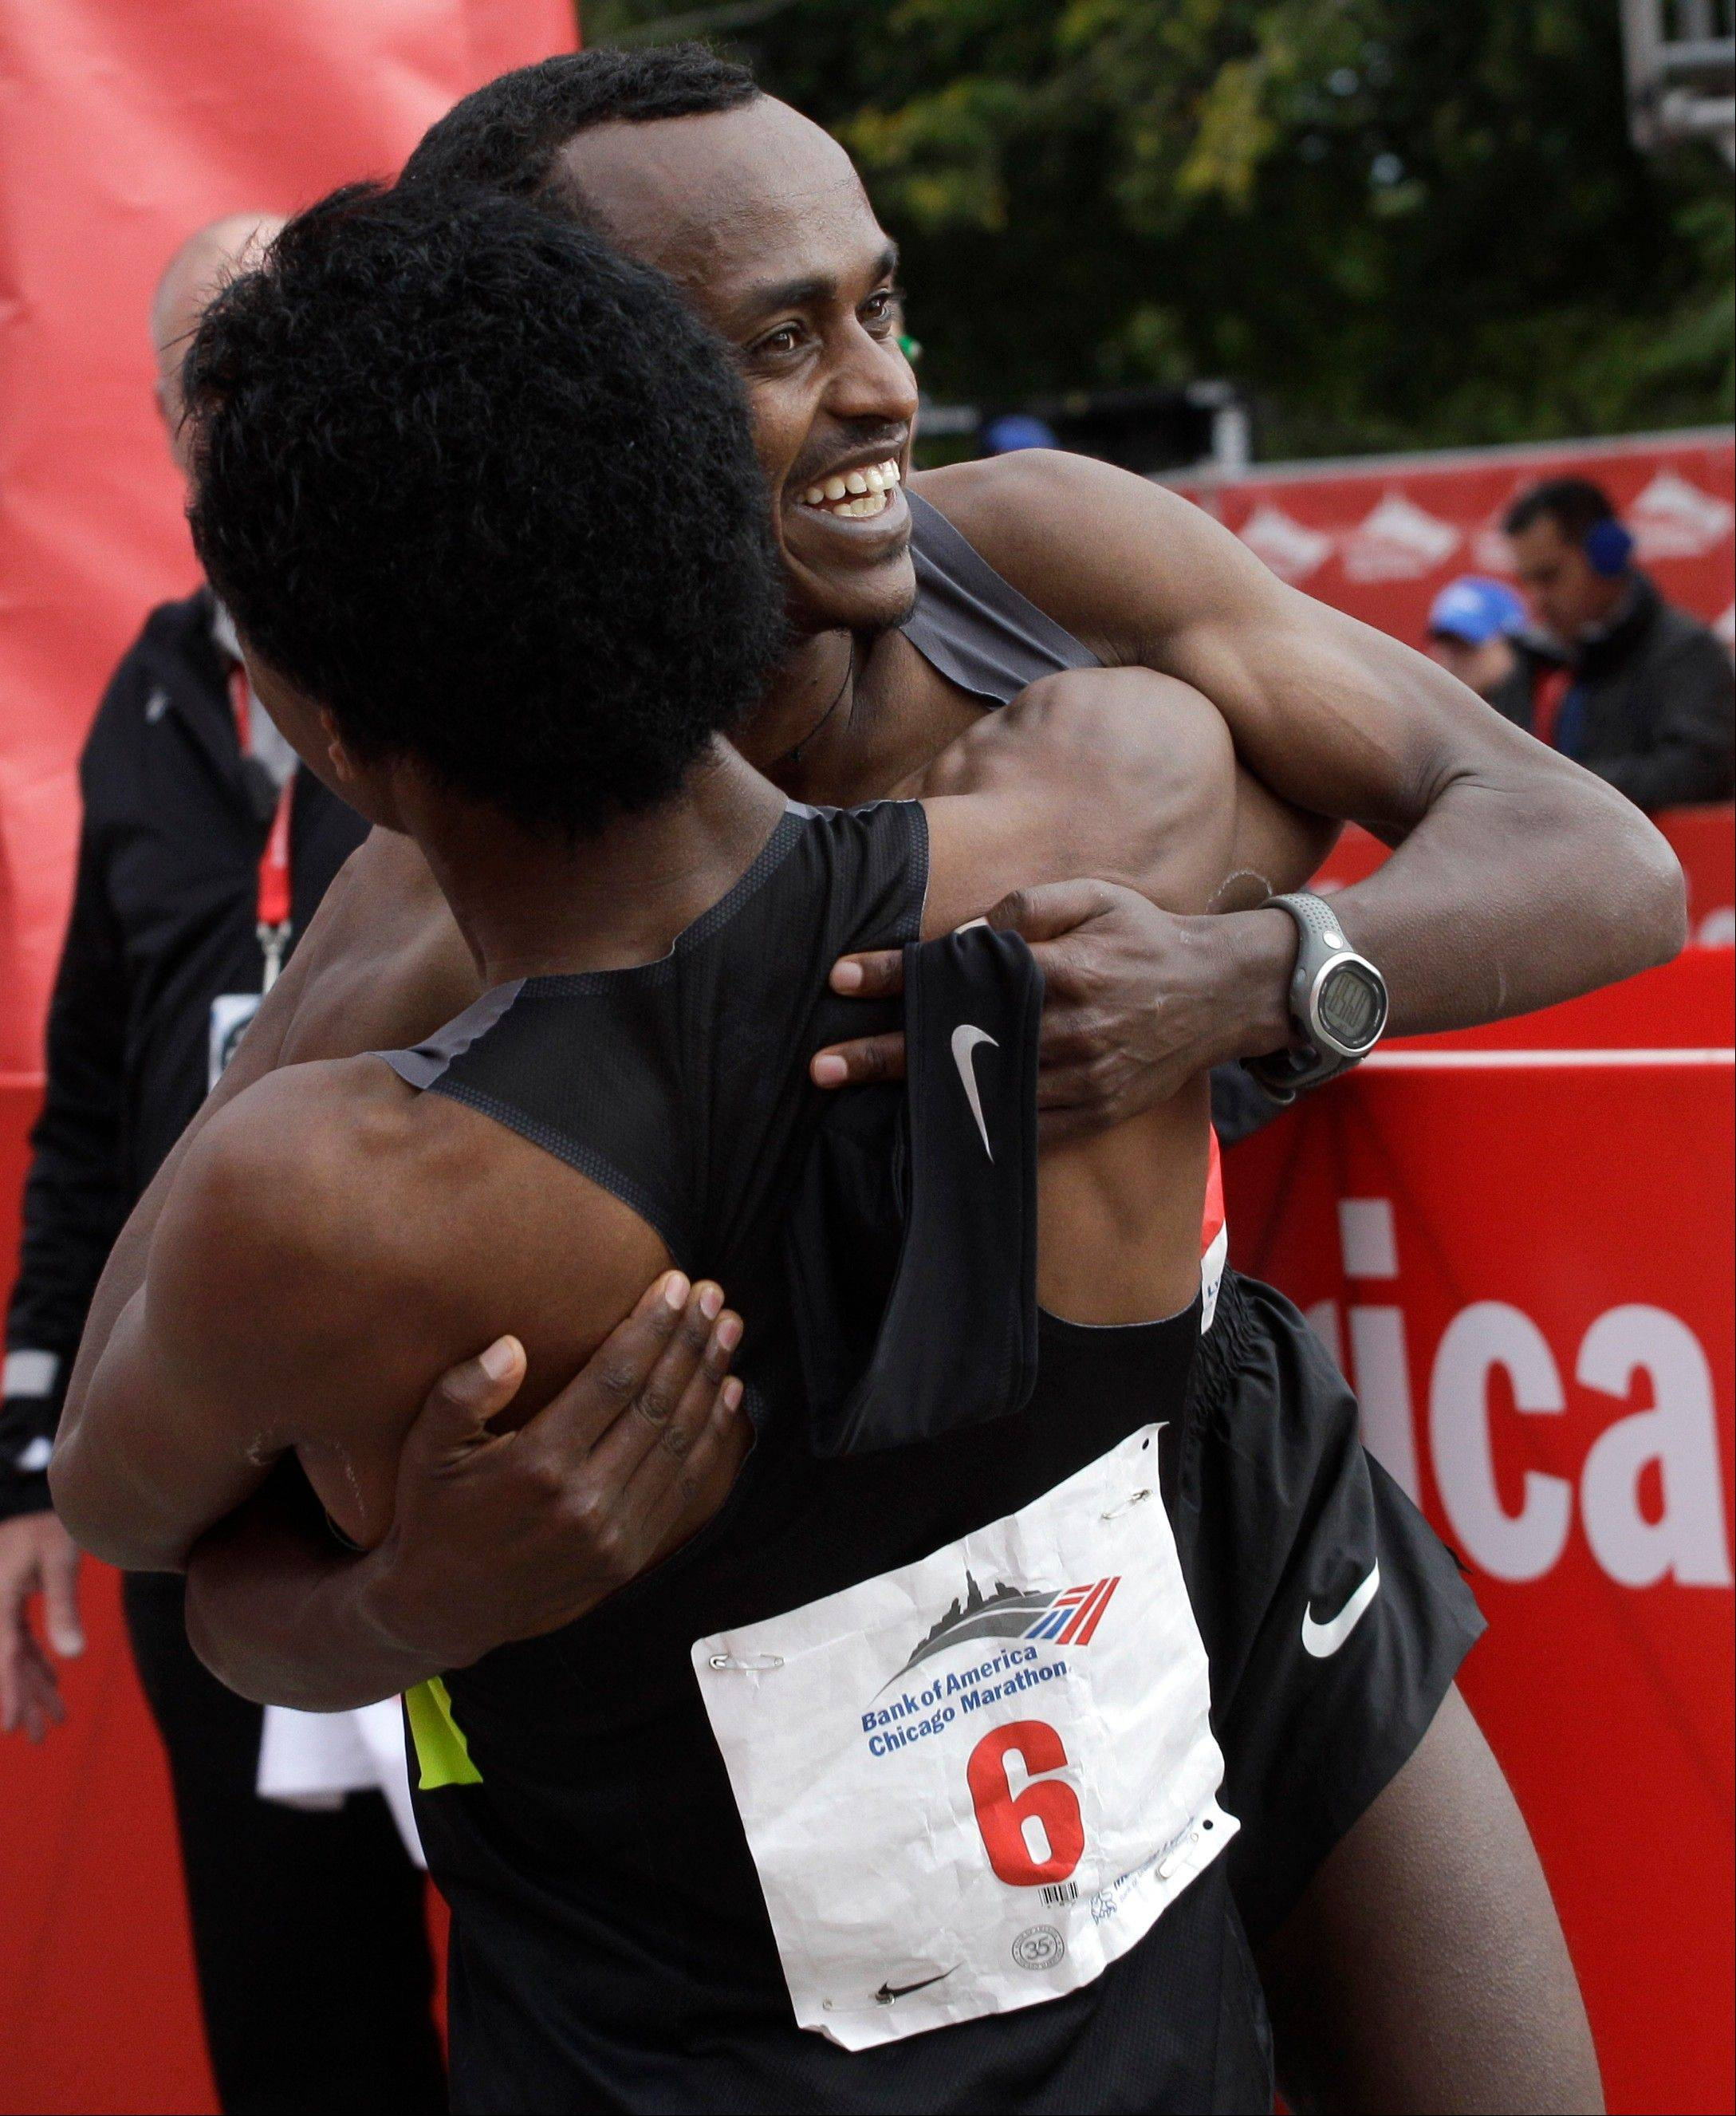 Tsegaye Kebede back, celebrates with fellow Ethiopian Feyisa Lilesa (6), after Kebede won first place and Lilesa finished second in the 2012 Chicago Marathon Sunday, Oct. 7, 2012.